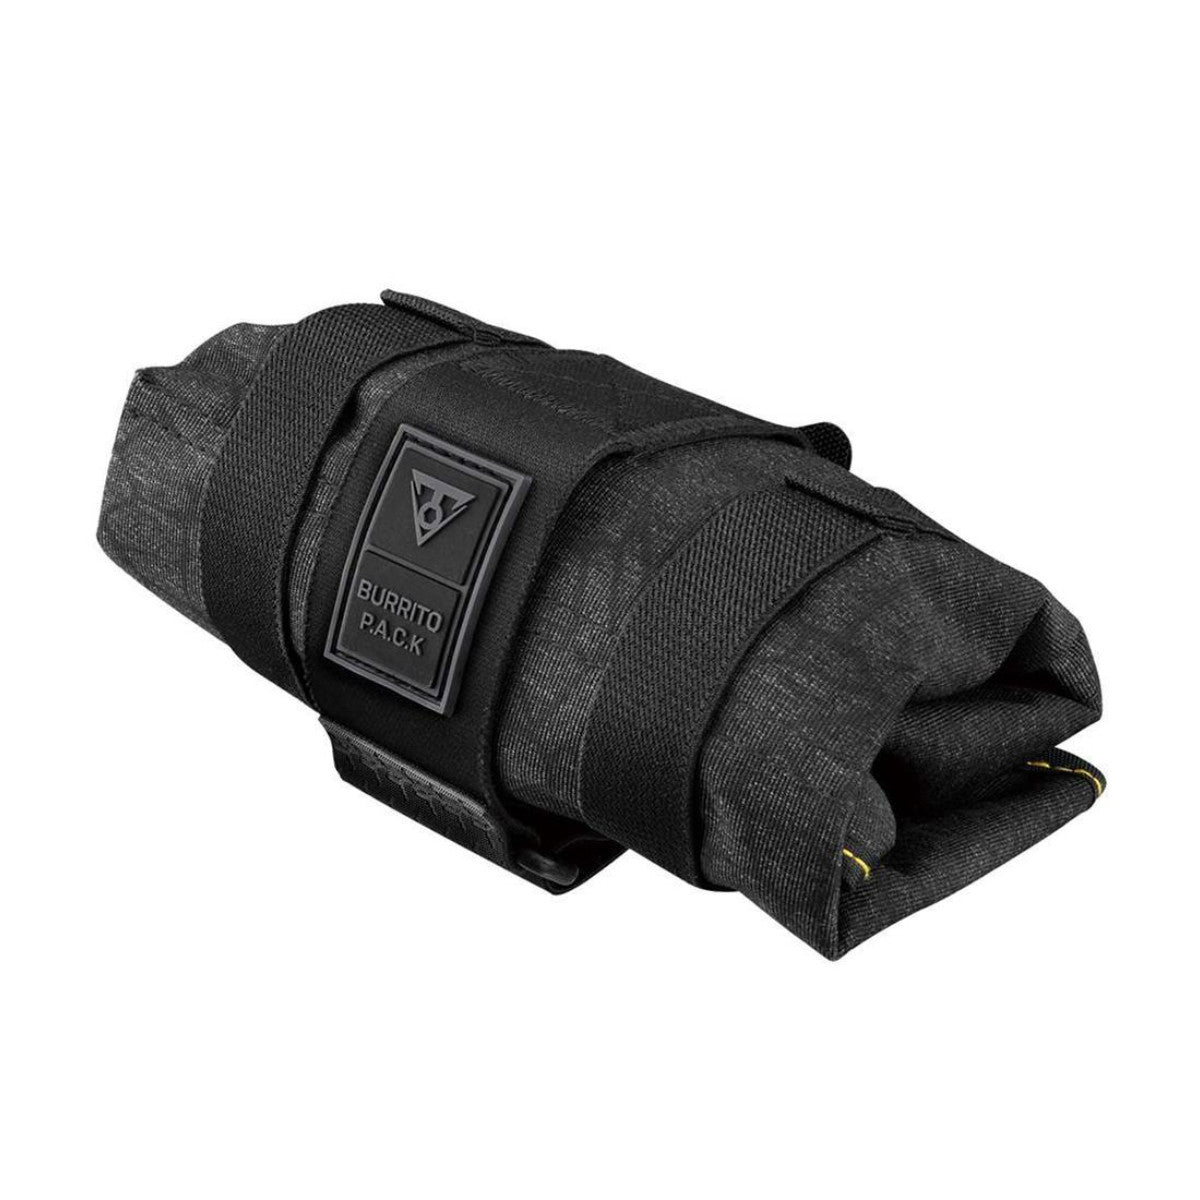 Topeak Burrito Weatherproof Saddle Pack